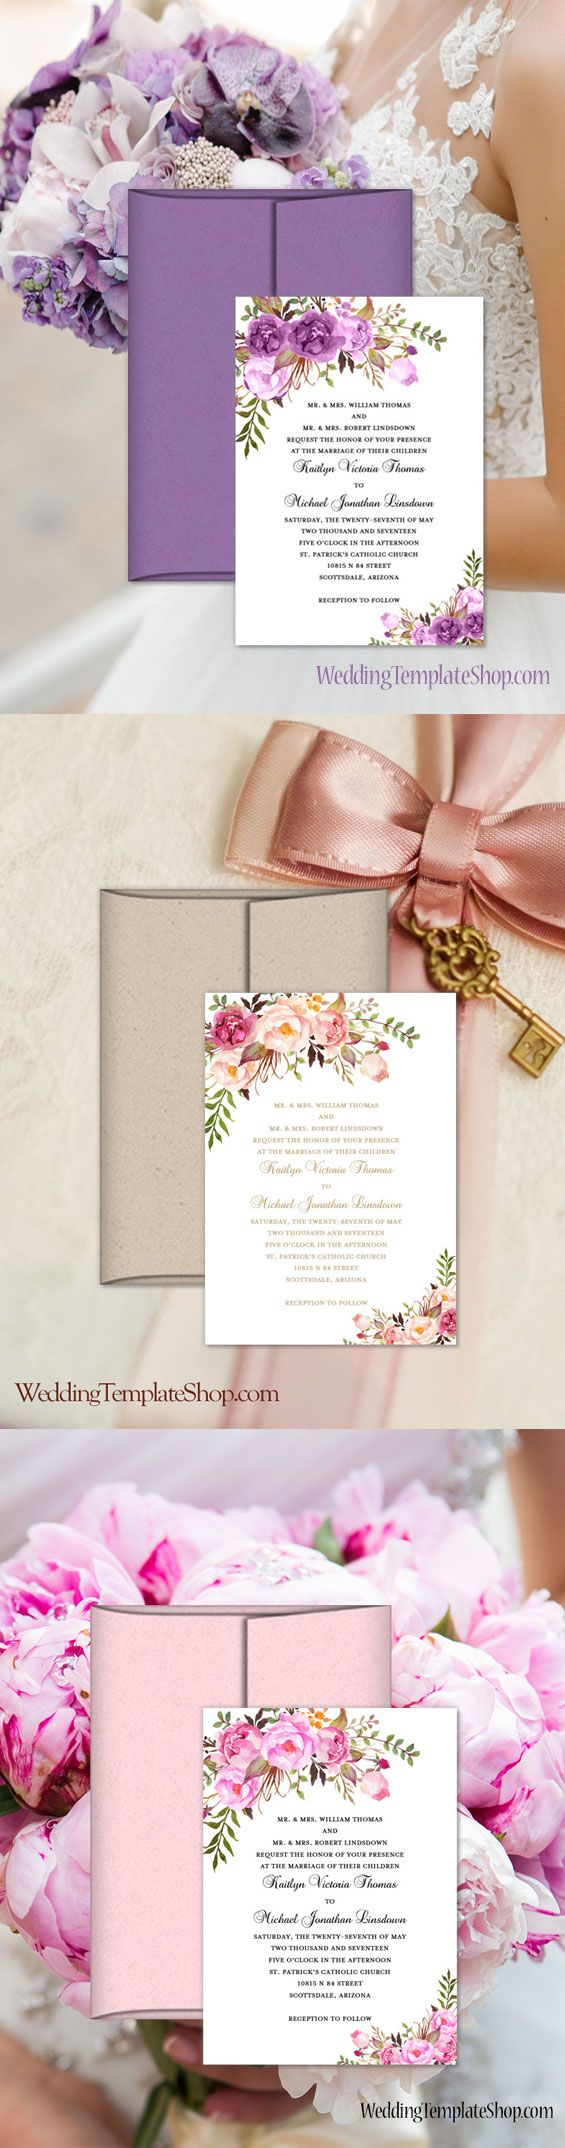 diy photo wedding invitations templates%0A DIY Wedding Invitation Templates  You Edit  u     Print  Romantic Blossoms  Design Series in multiple